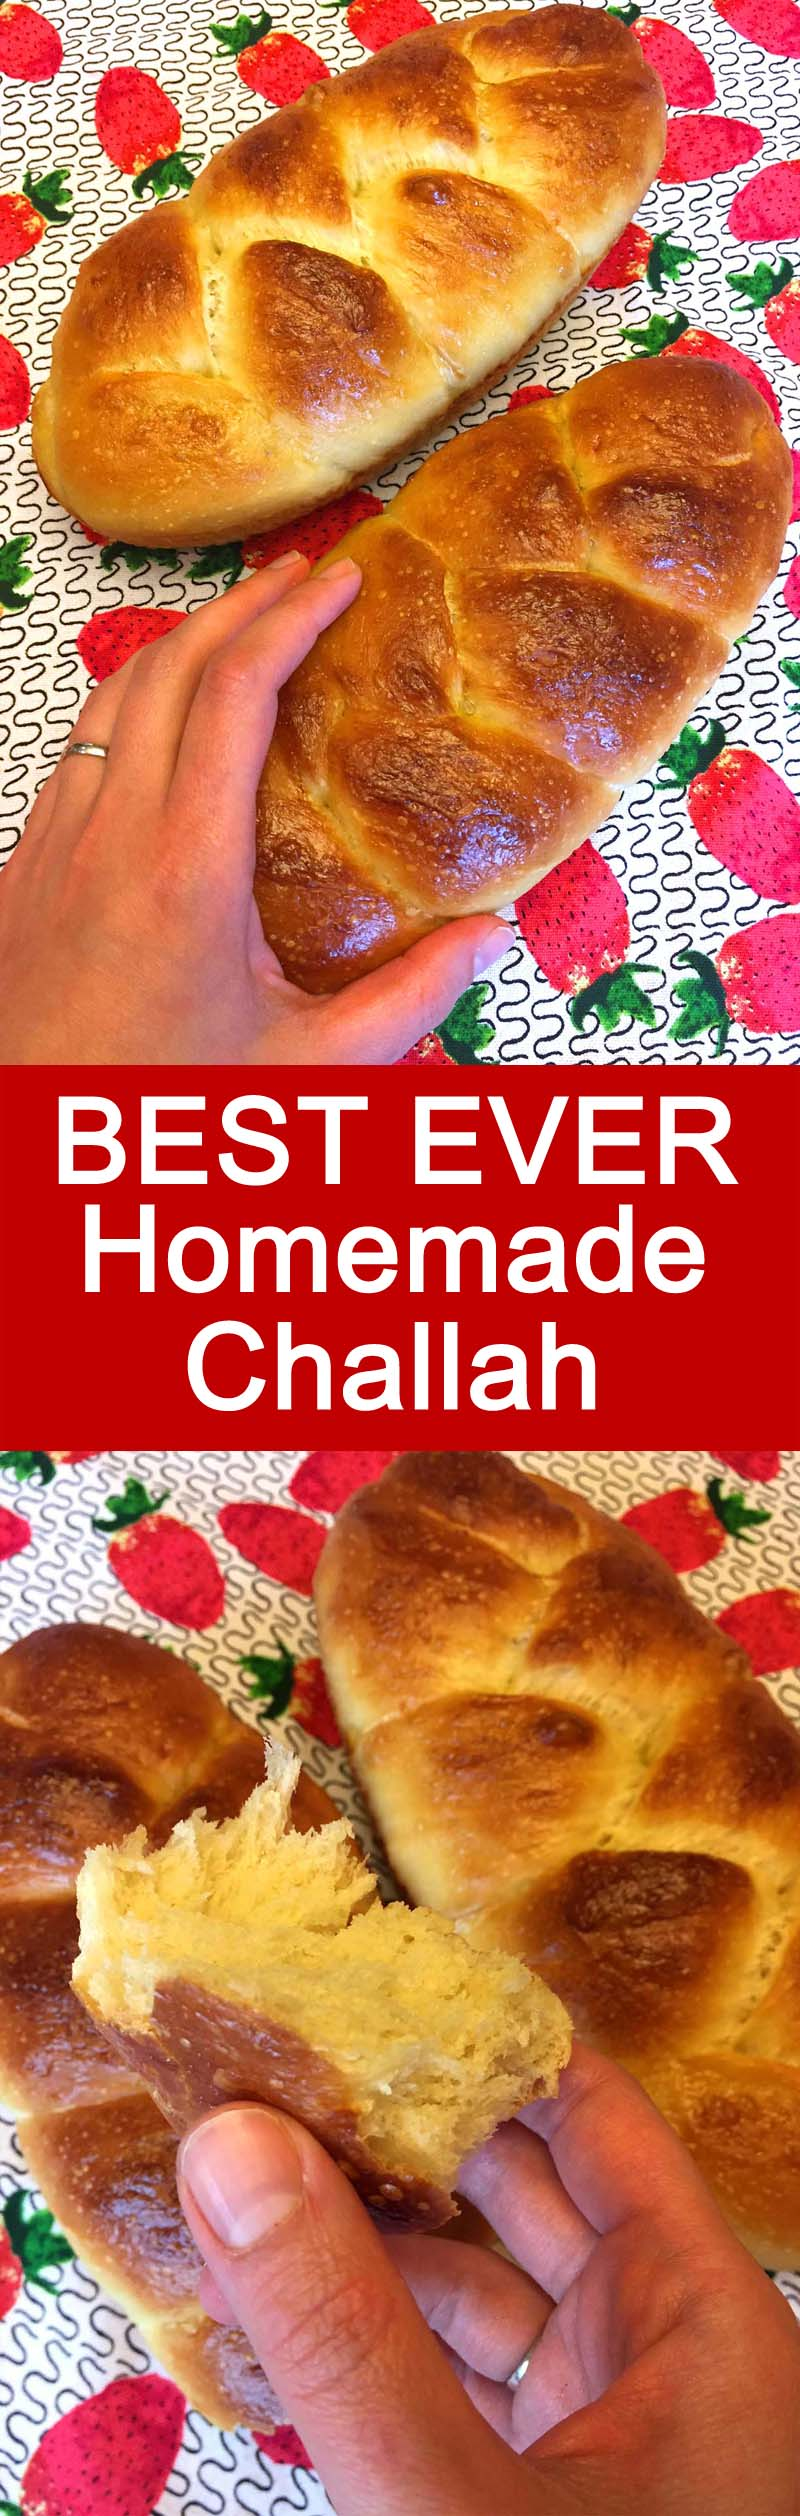 This homemade challah is so soft and delicious! This is the best homemade challah bread recipe ever!